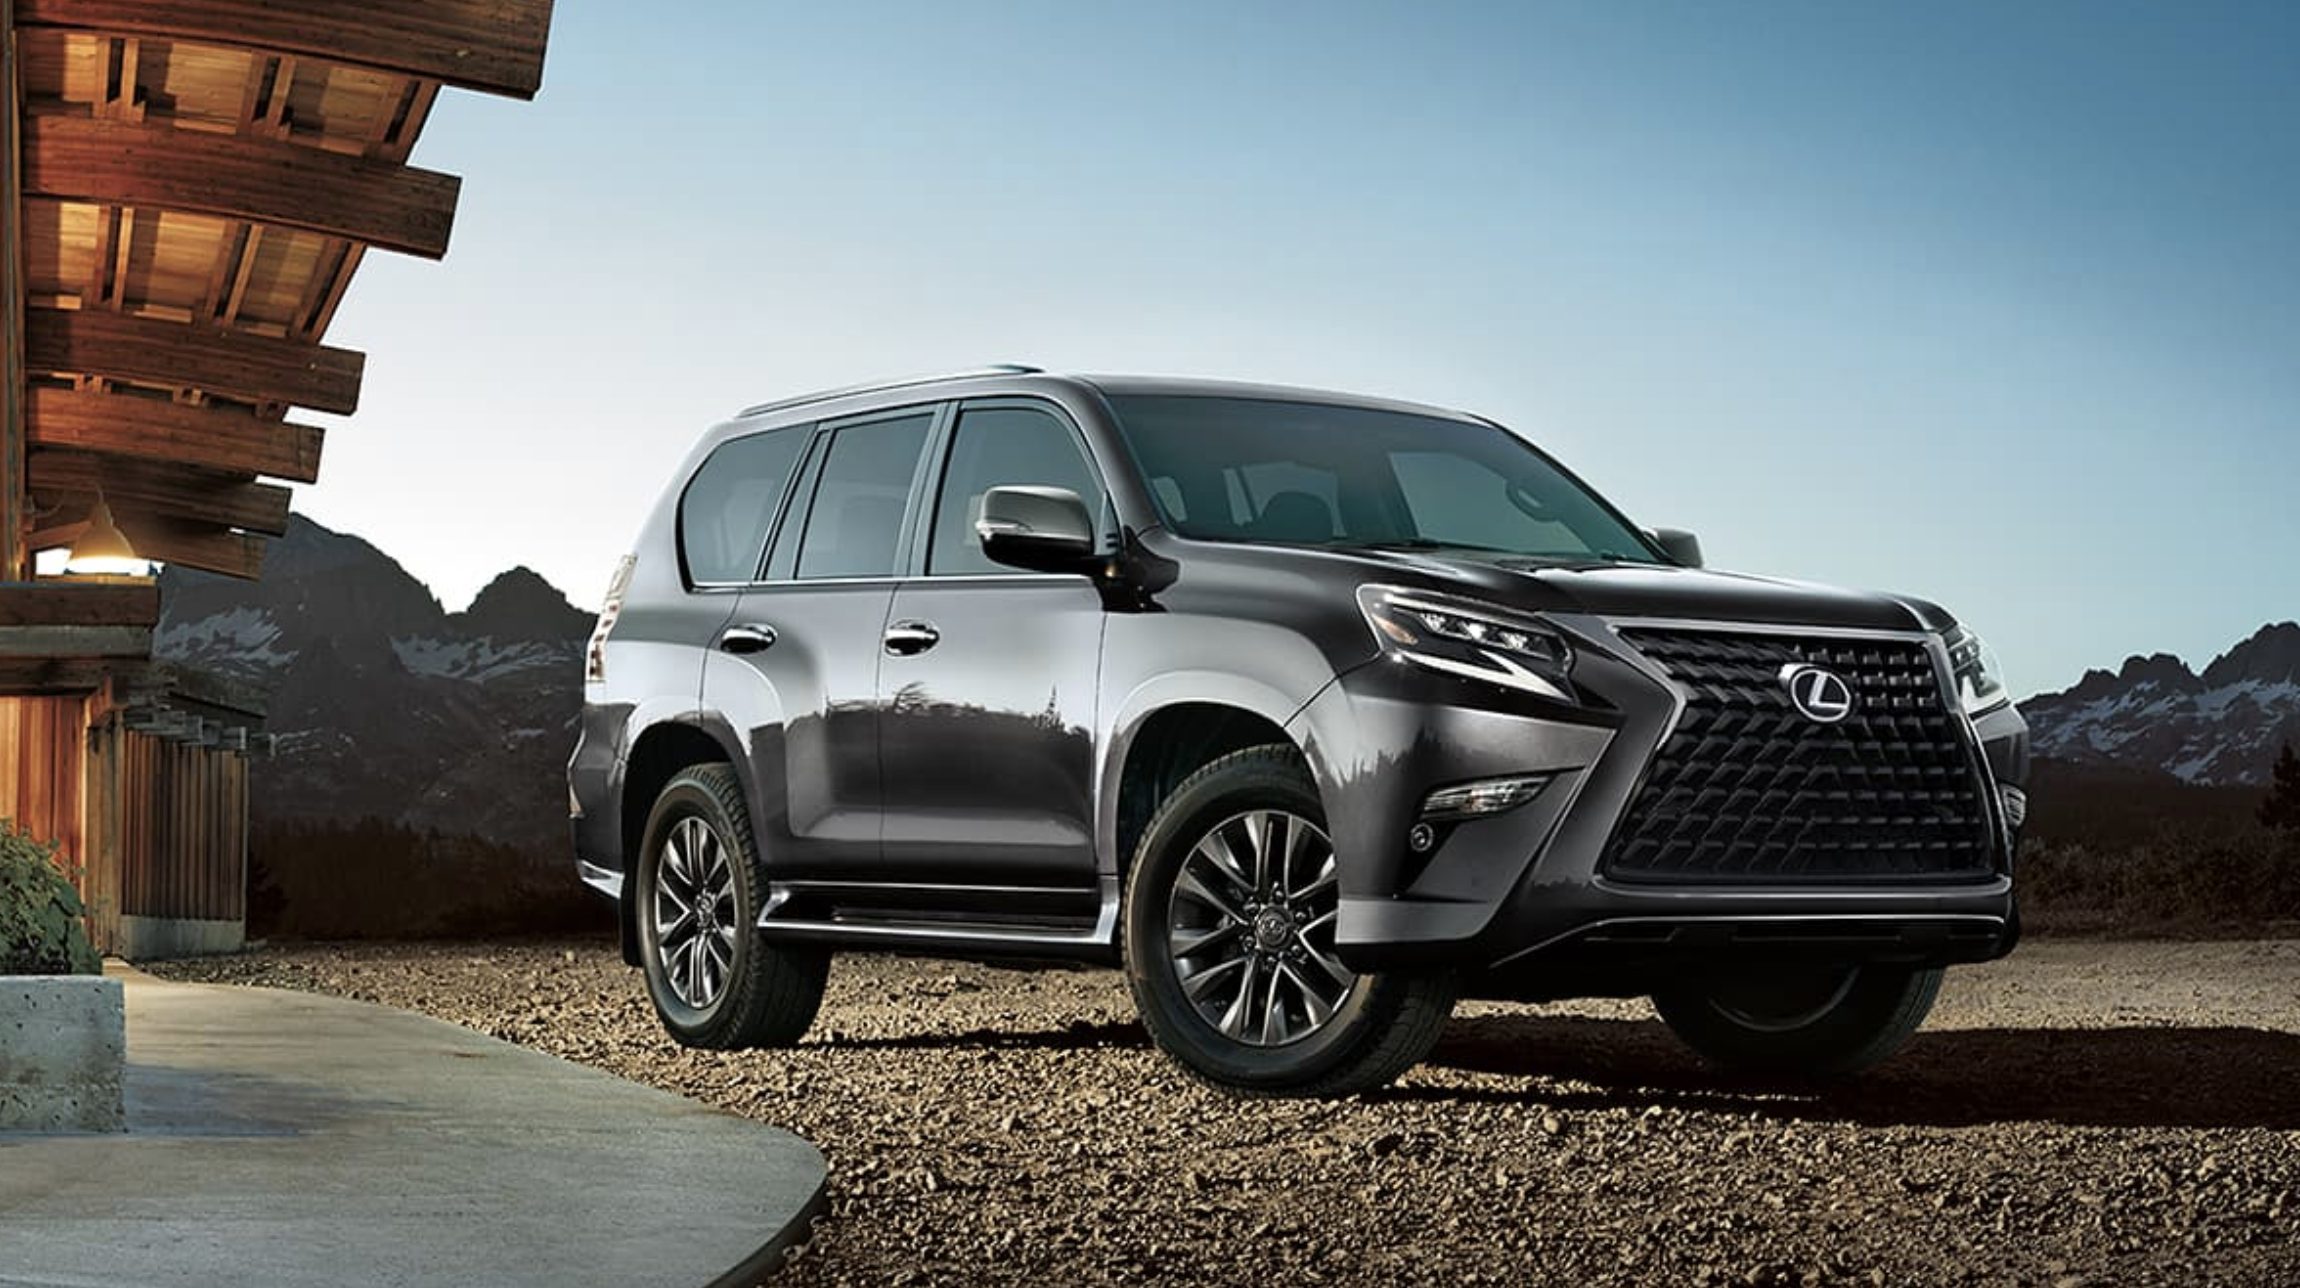 2021 Lexus Gx Review Pricing And Specs